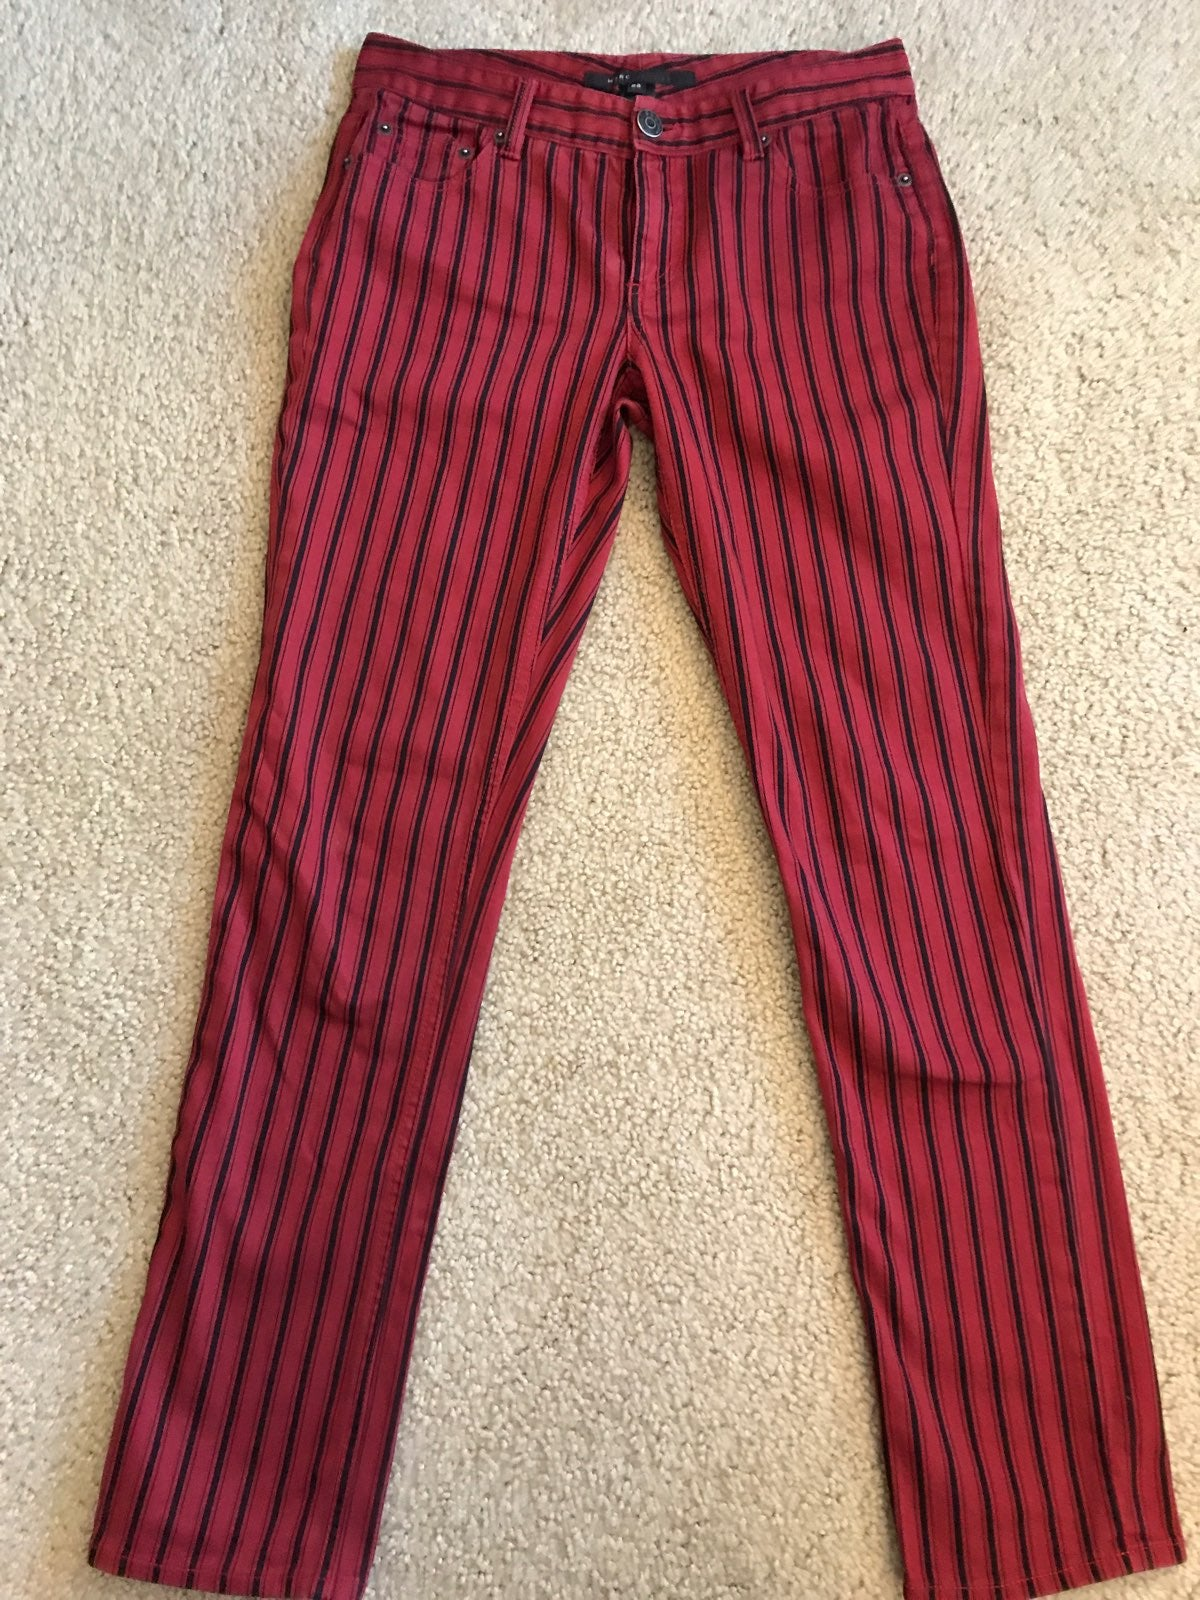 Vintage Red Pinstripe Marc Jacobs Jeans